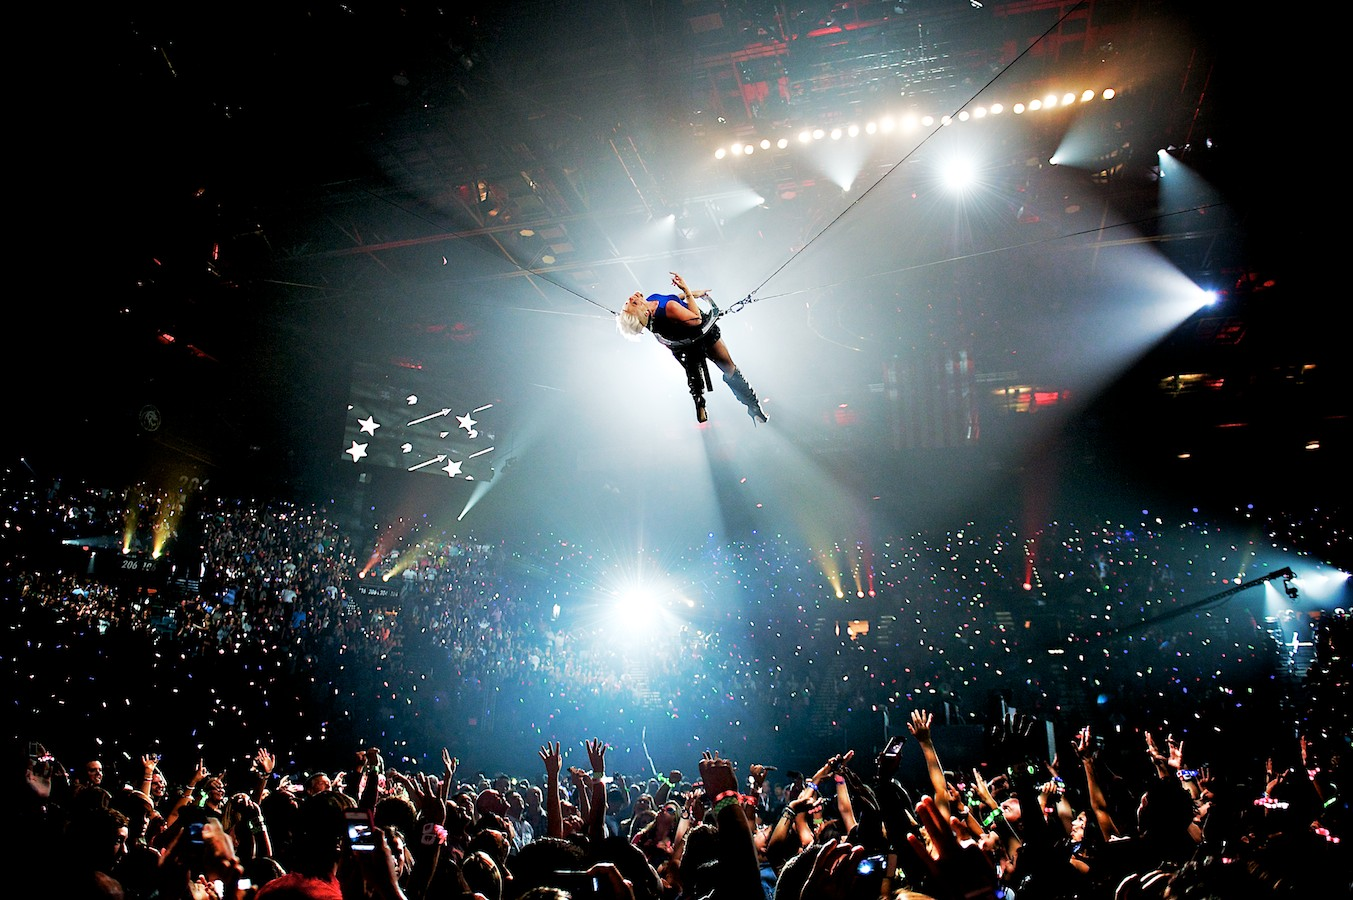 P!nk performs at the 2012 iHeartRadio Music Festival in Las Vegas, NV.